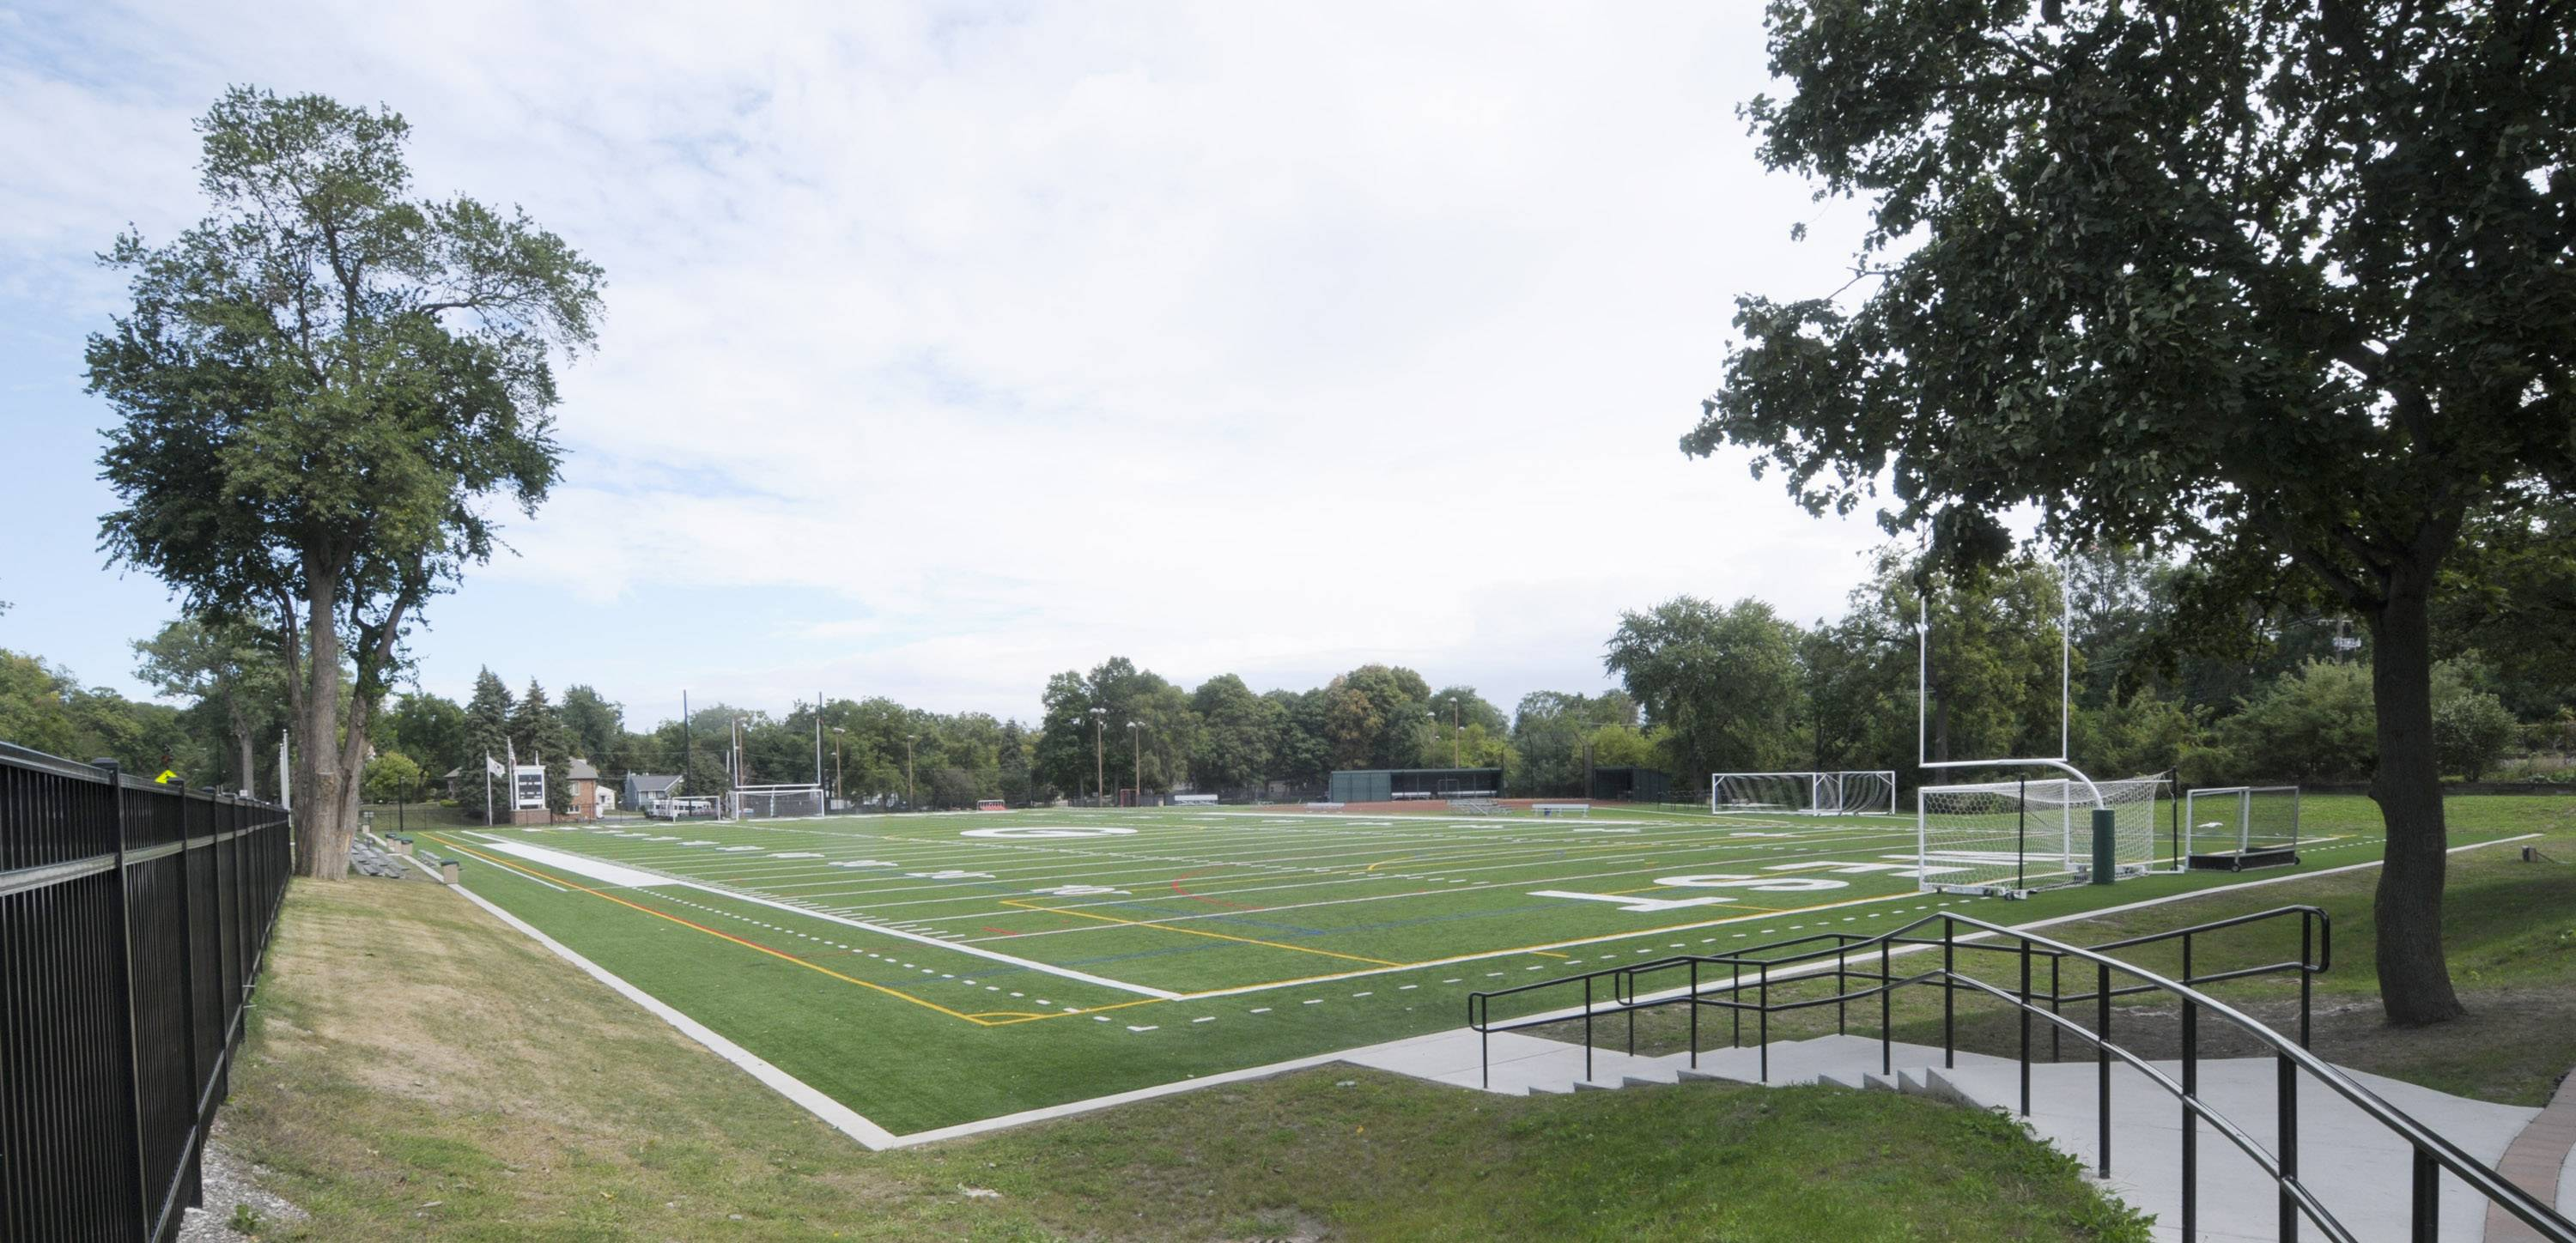 Glenbard parents upset with athlete suspensions after drinking party